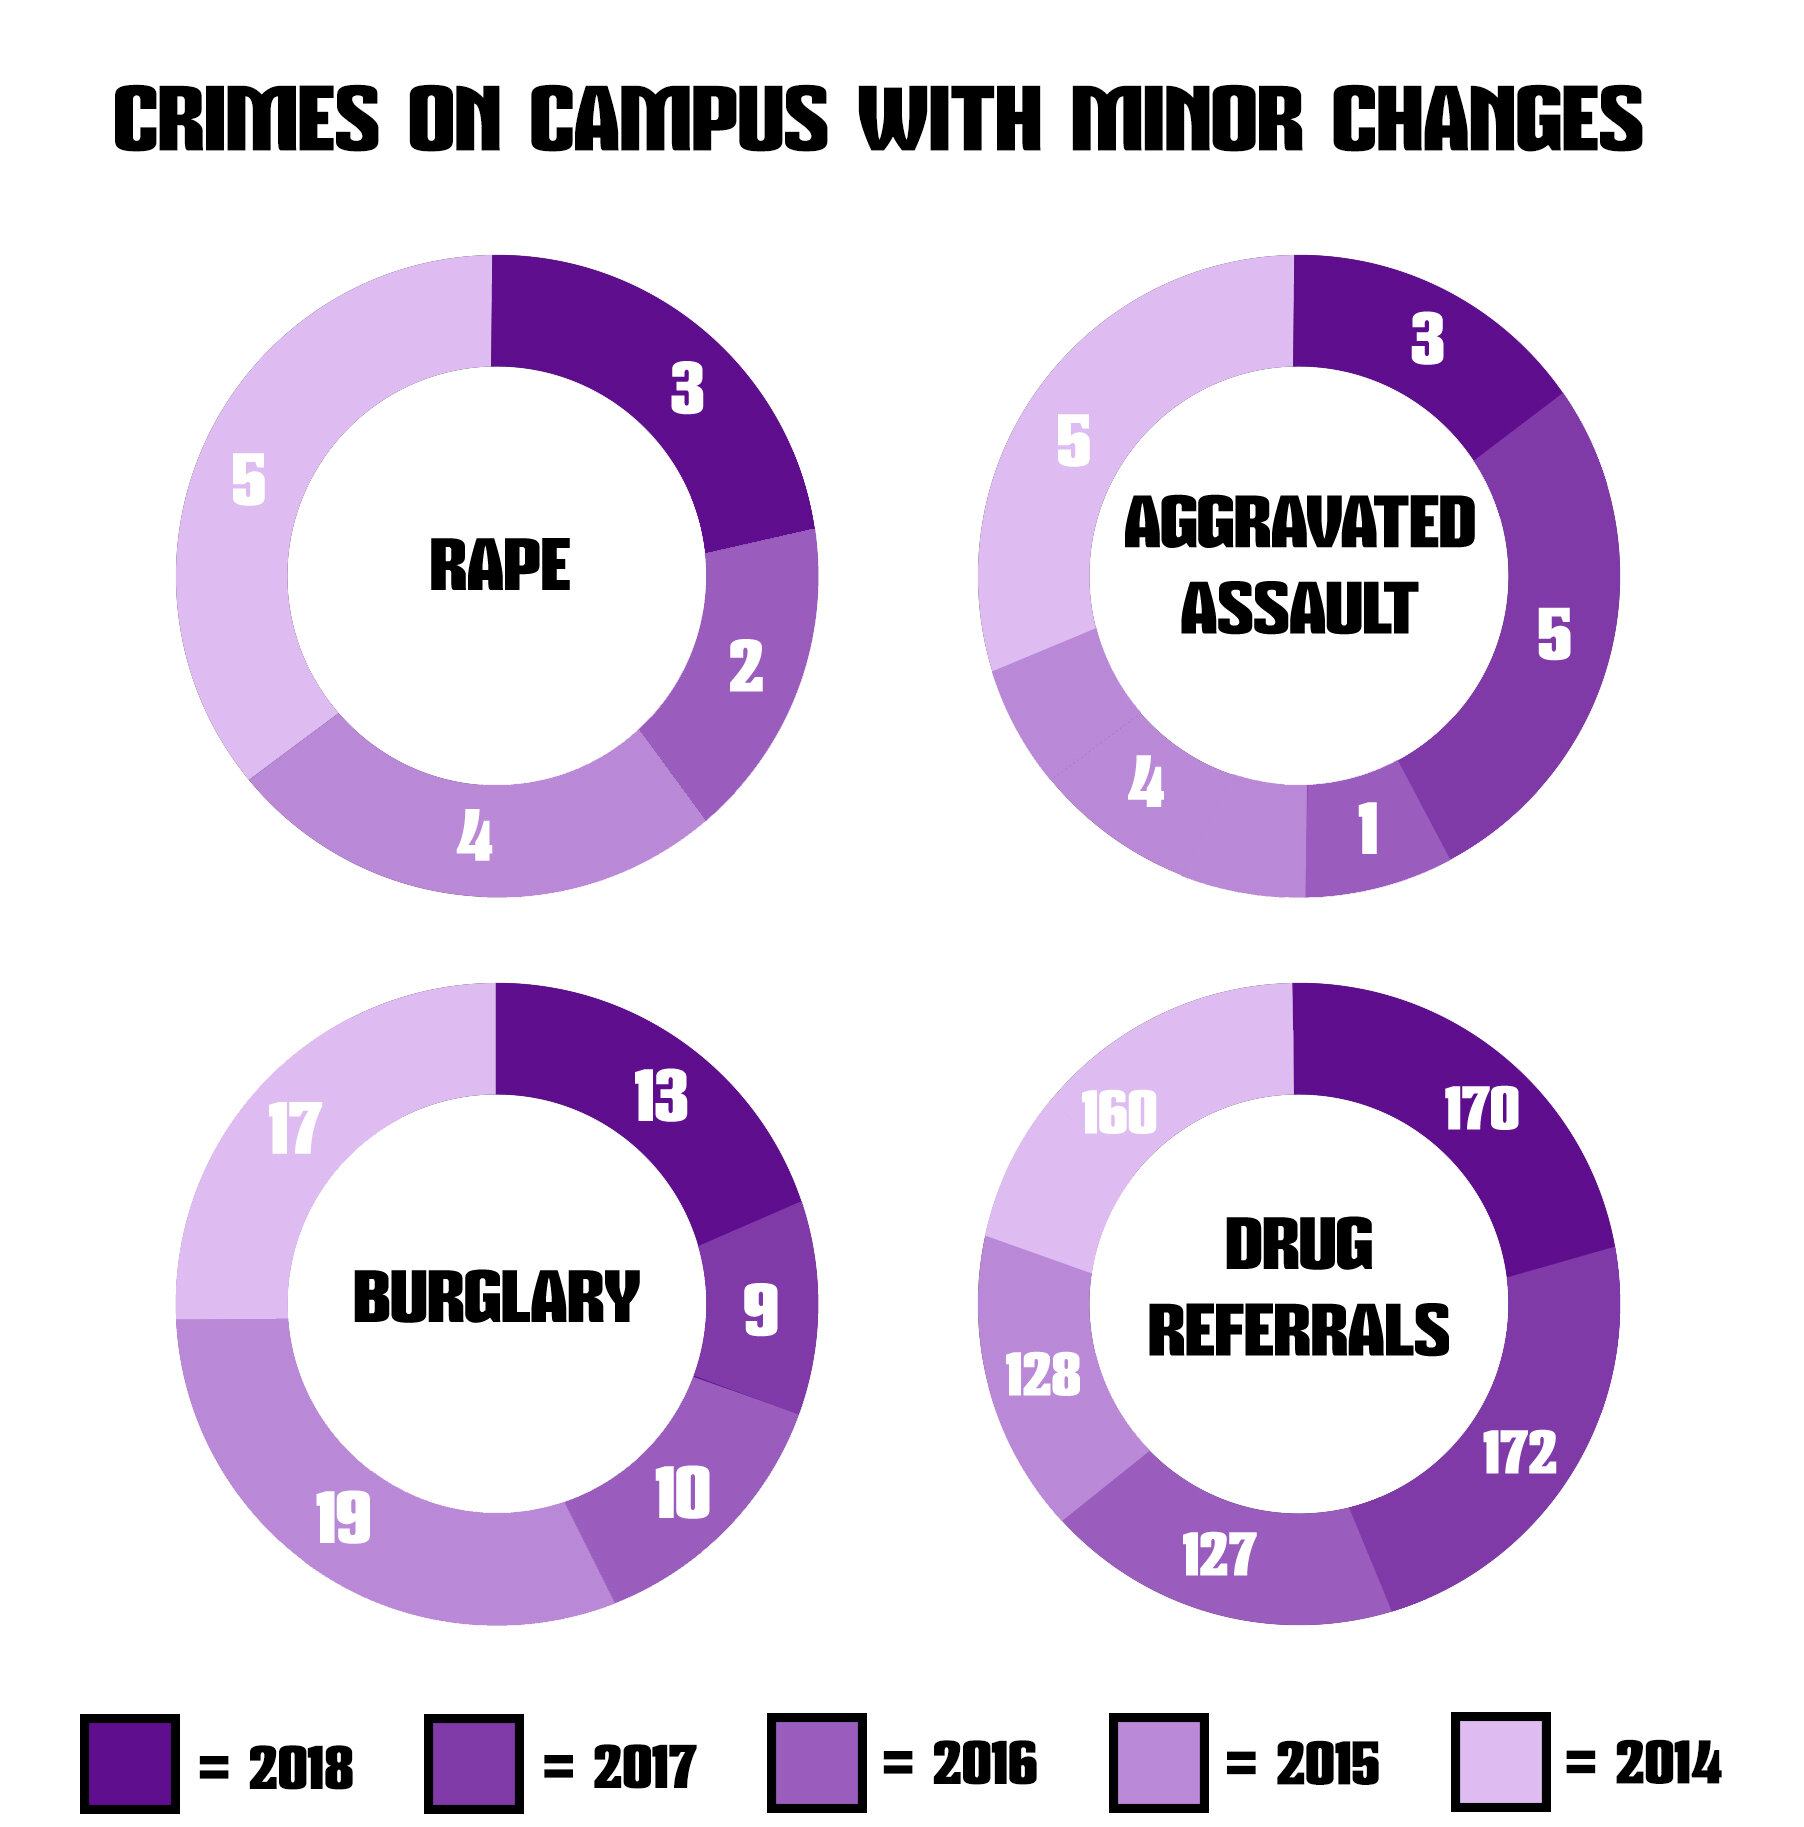 Rape, aggravated assault, burglary and drug referrals are four crimes that have maintained a steady rate since 2014.